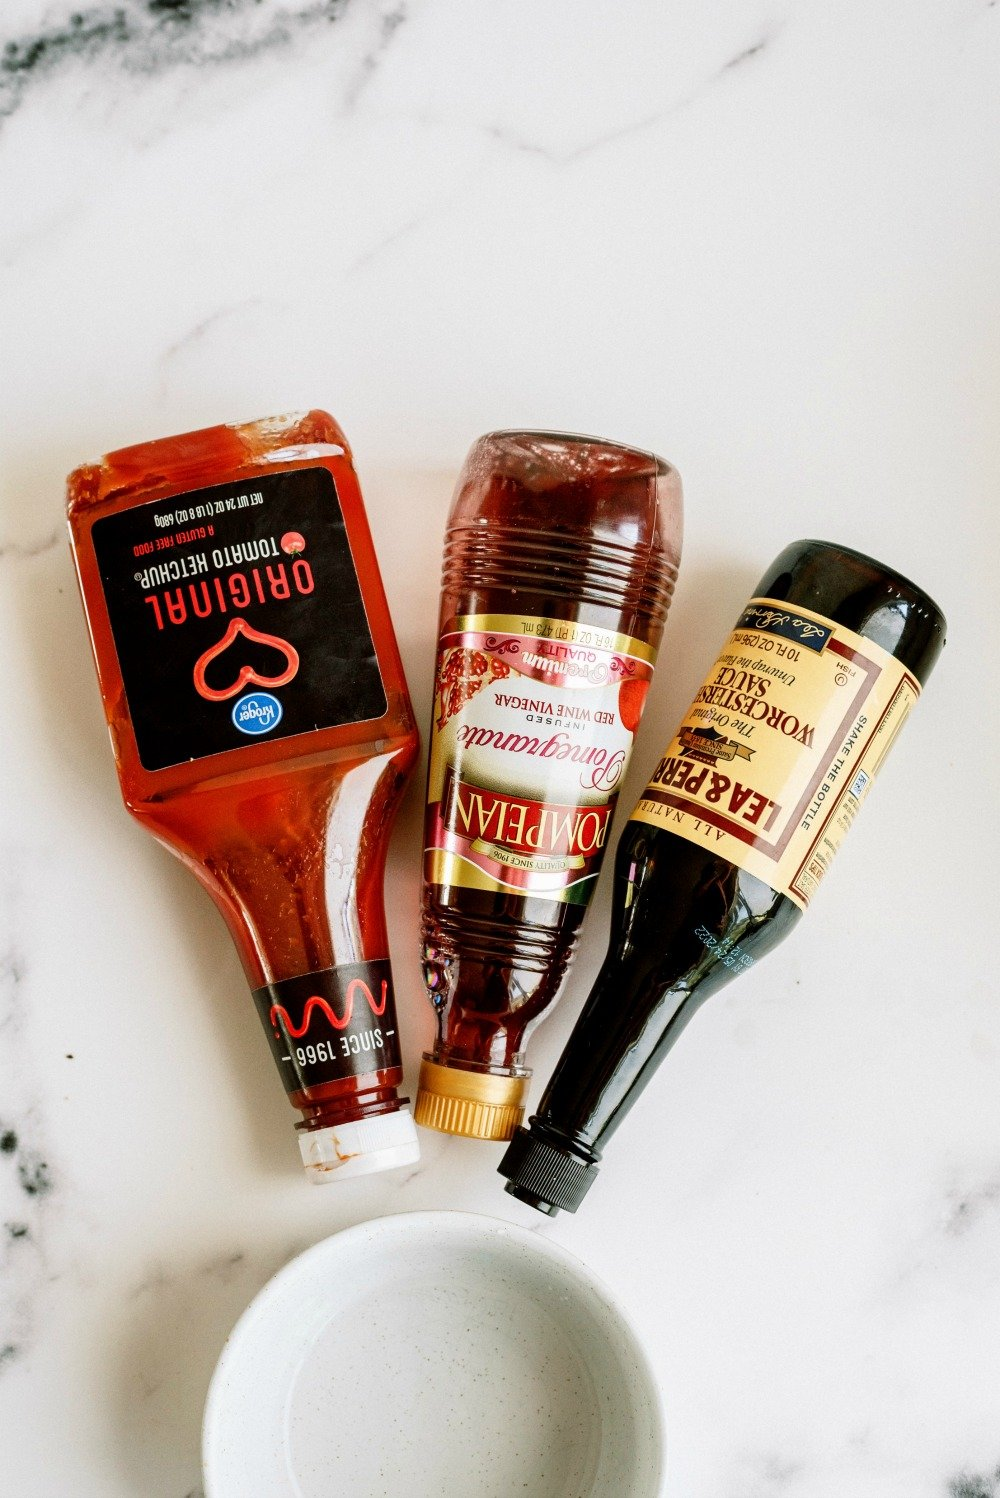 Ketchup, Vinegar and Worcestershire sauce